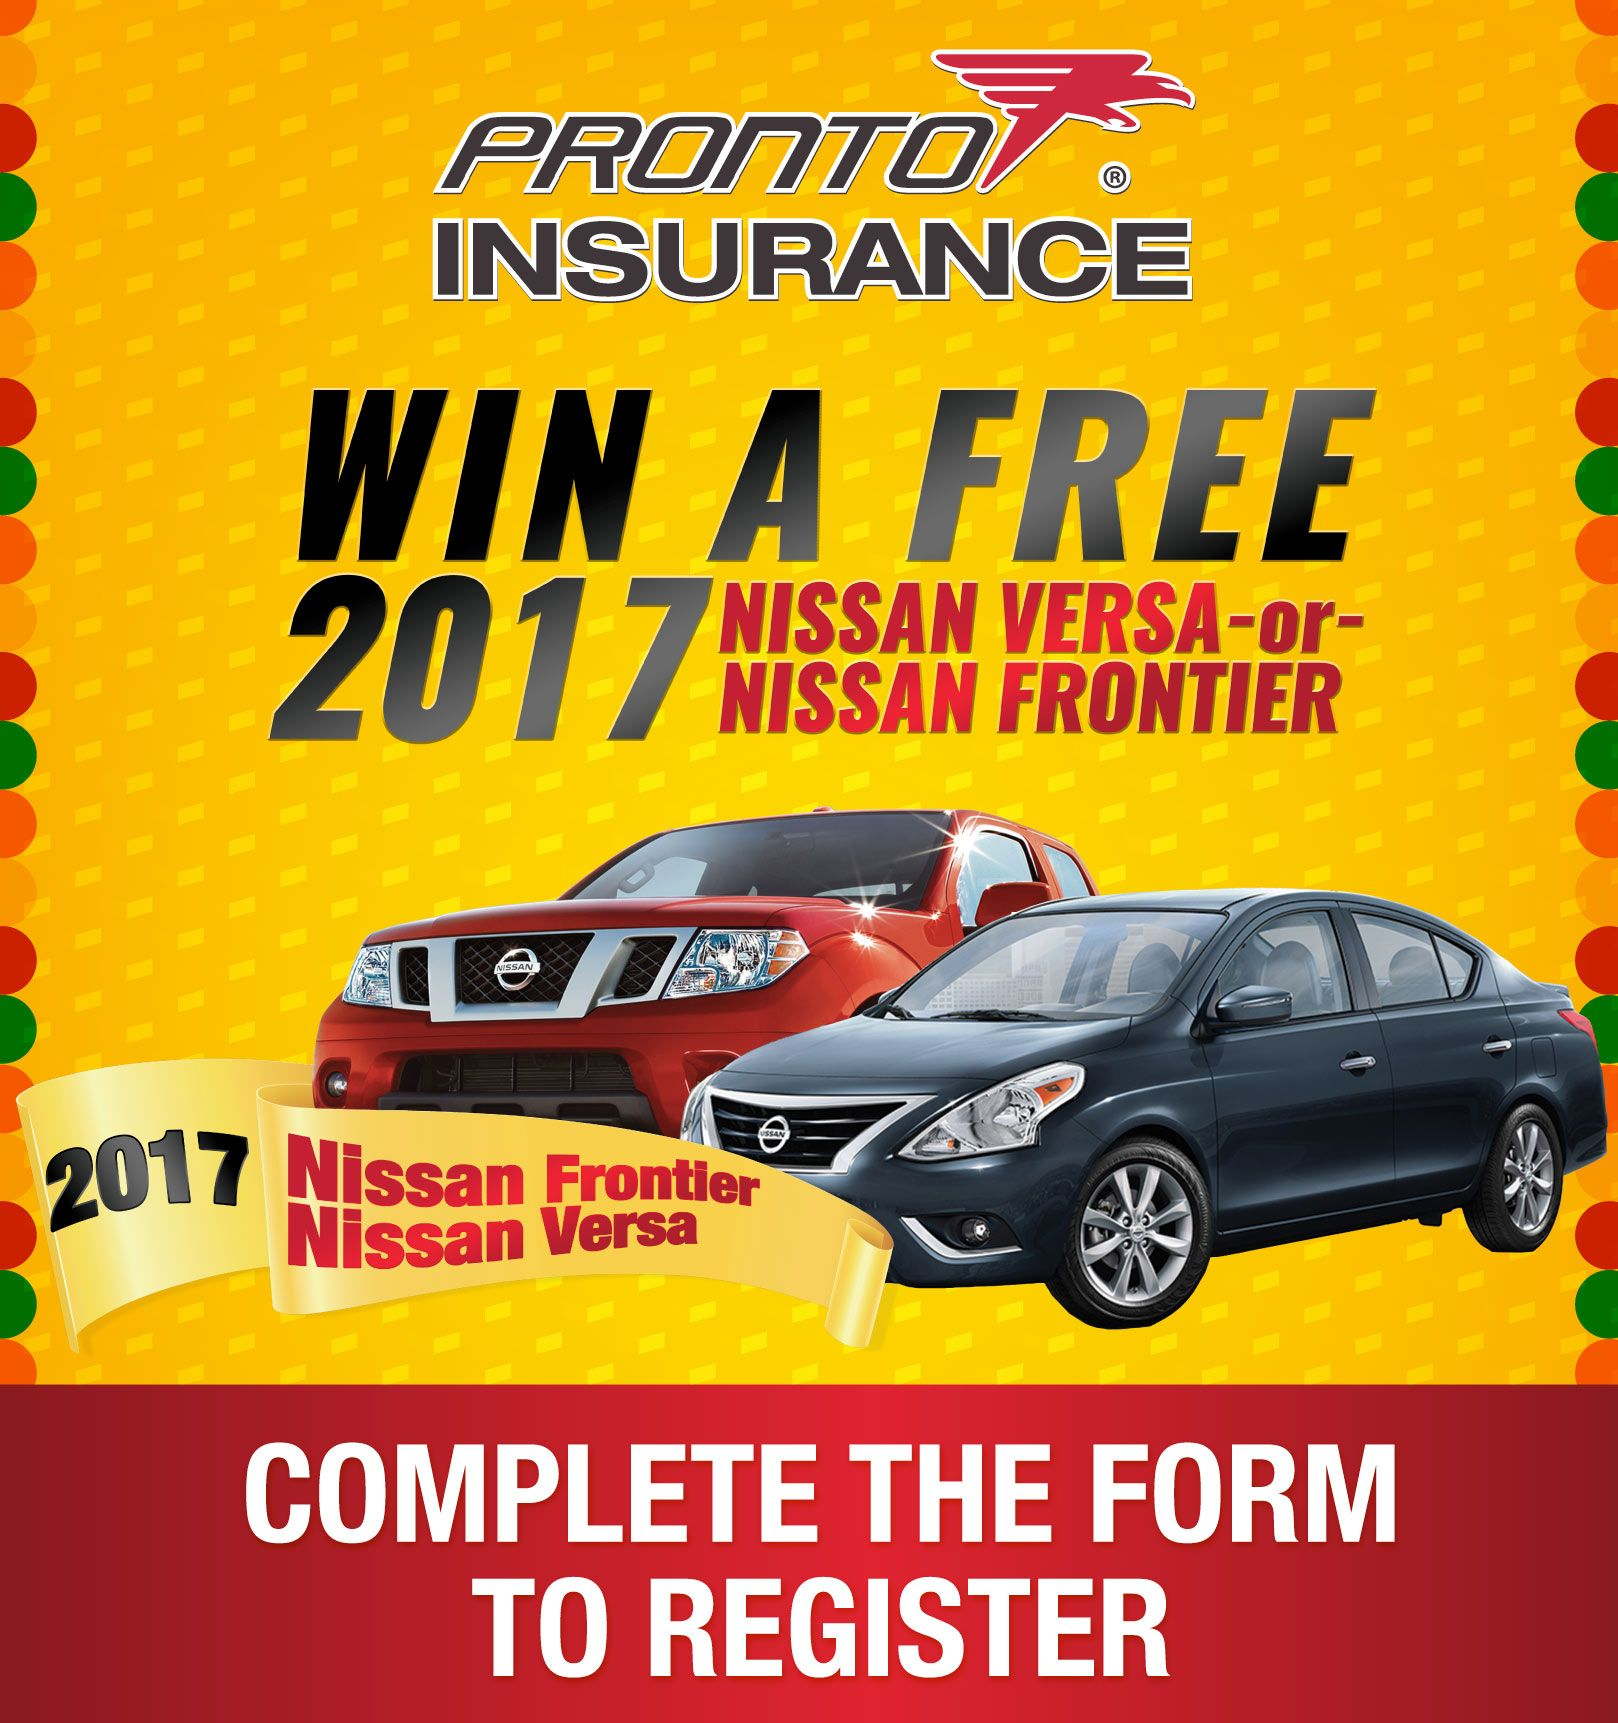 Here is your chance to win 1 of two 2017 nissans pronto